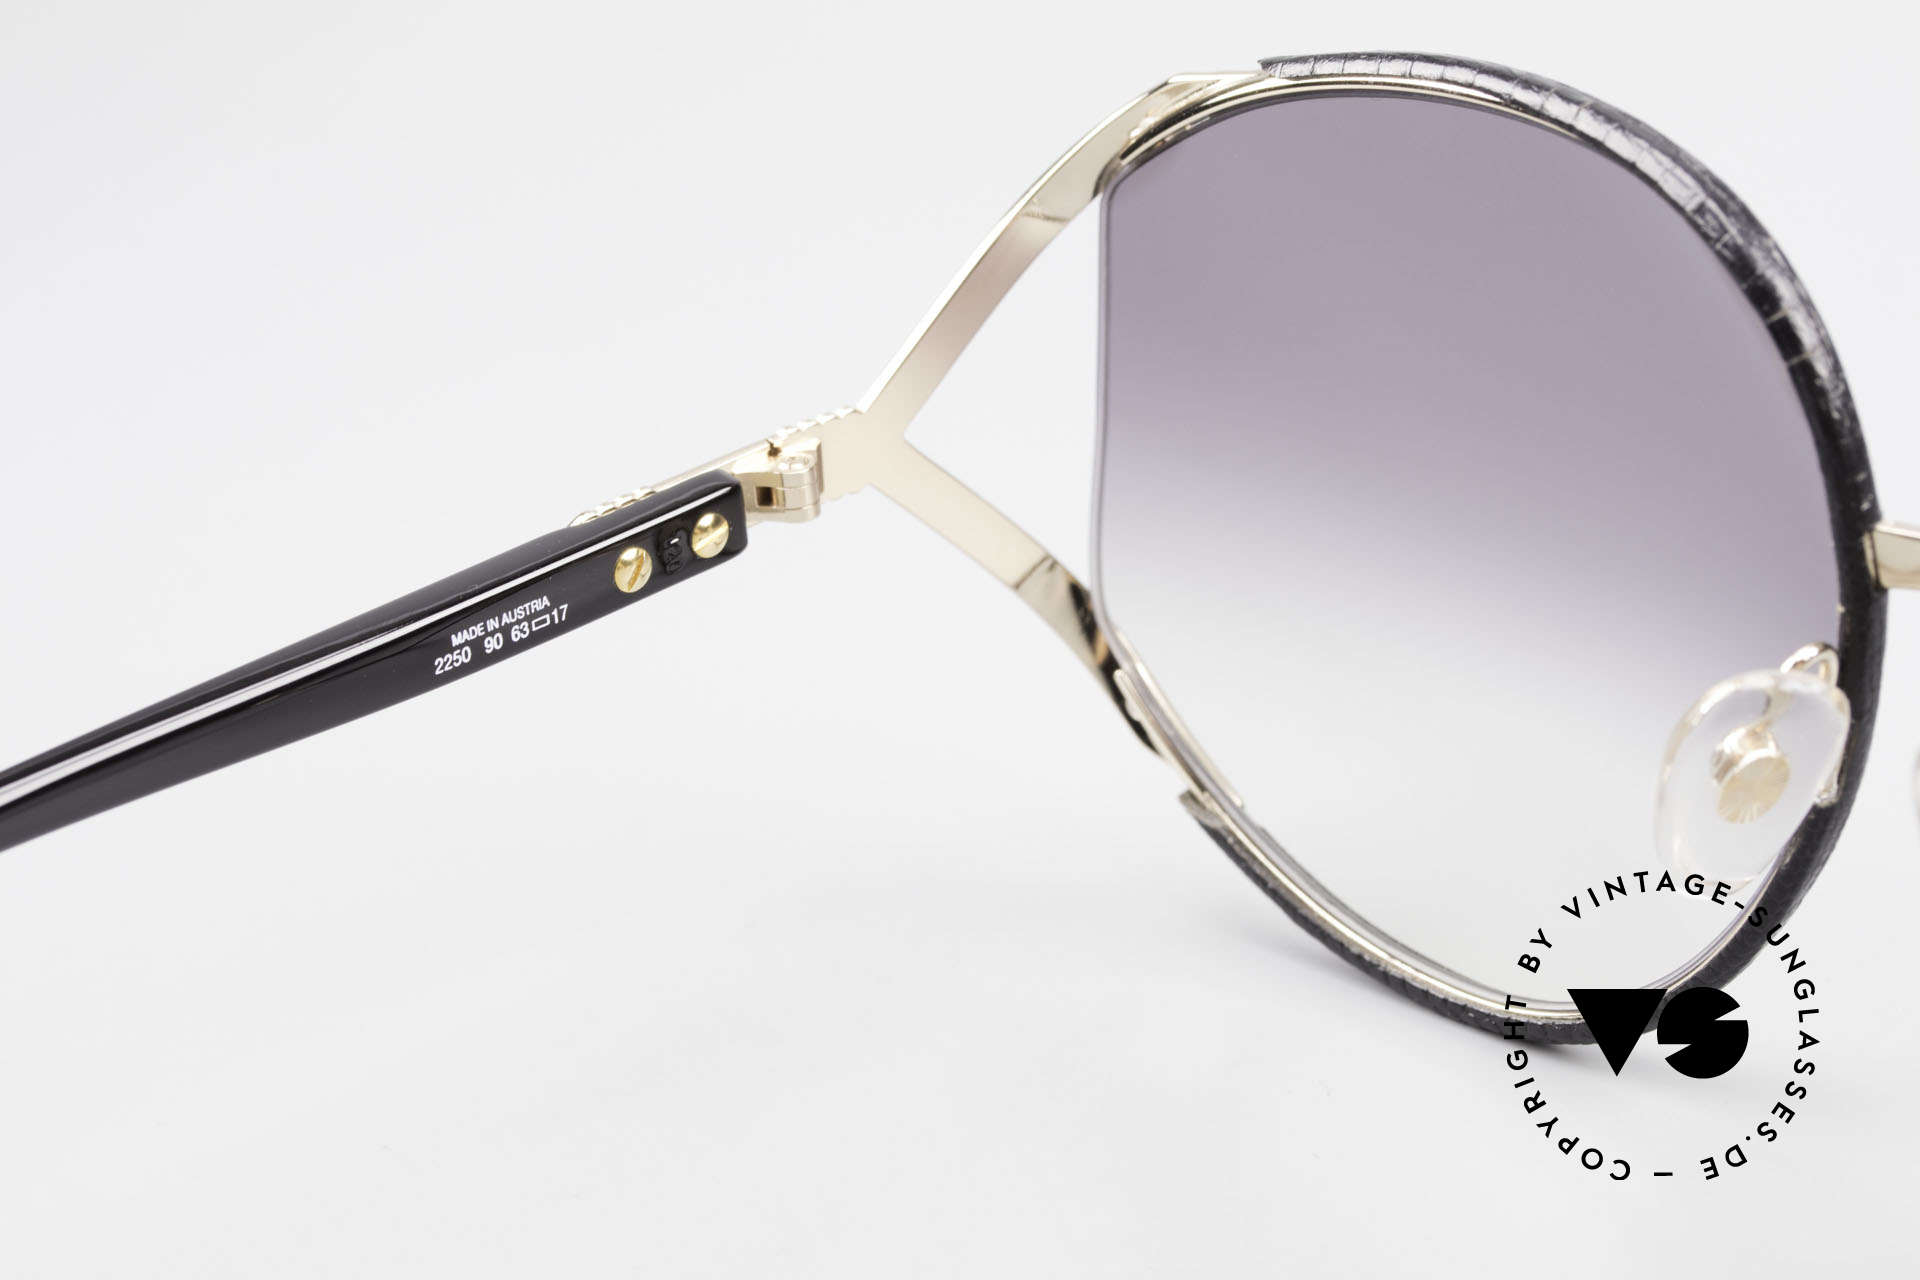 Christian Dior 2250 Rihanna Sunglasses Leather, unworn rarity (with Dior case and 1 pair of extra lenses), Made for Women